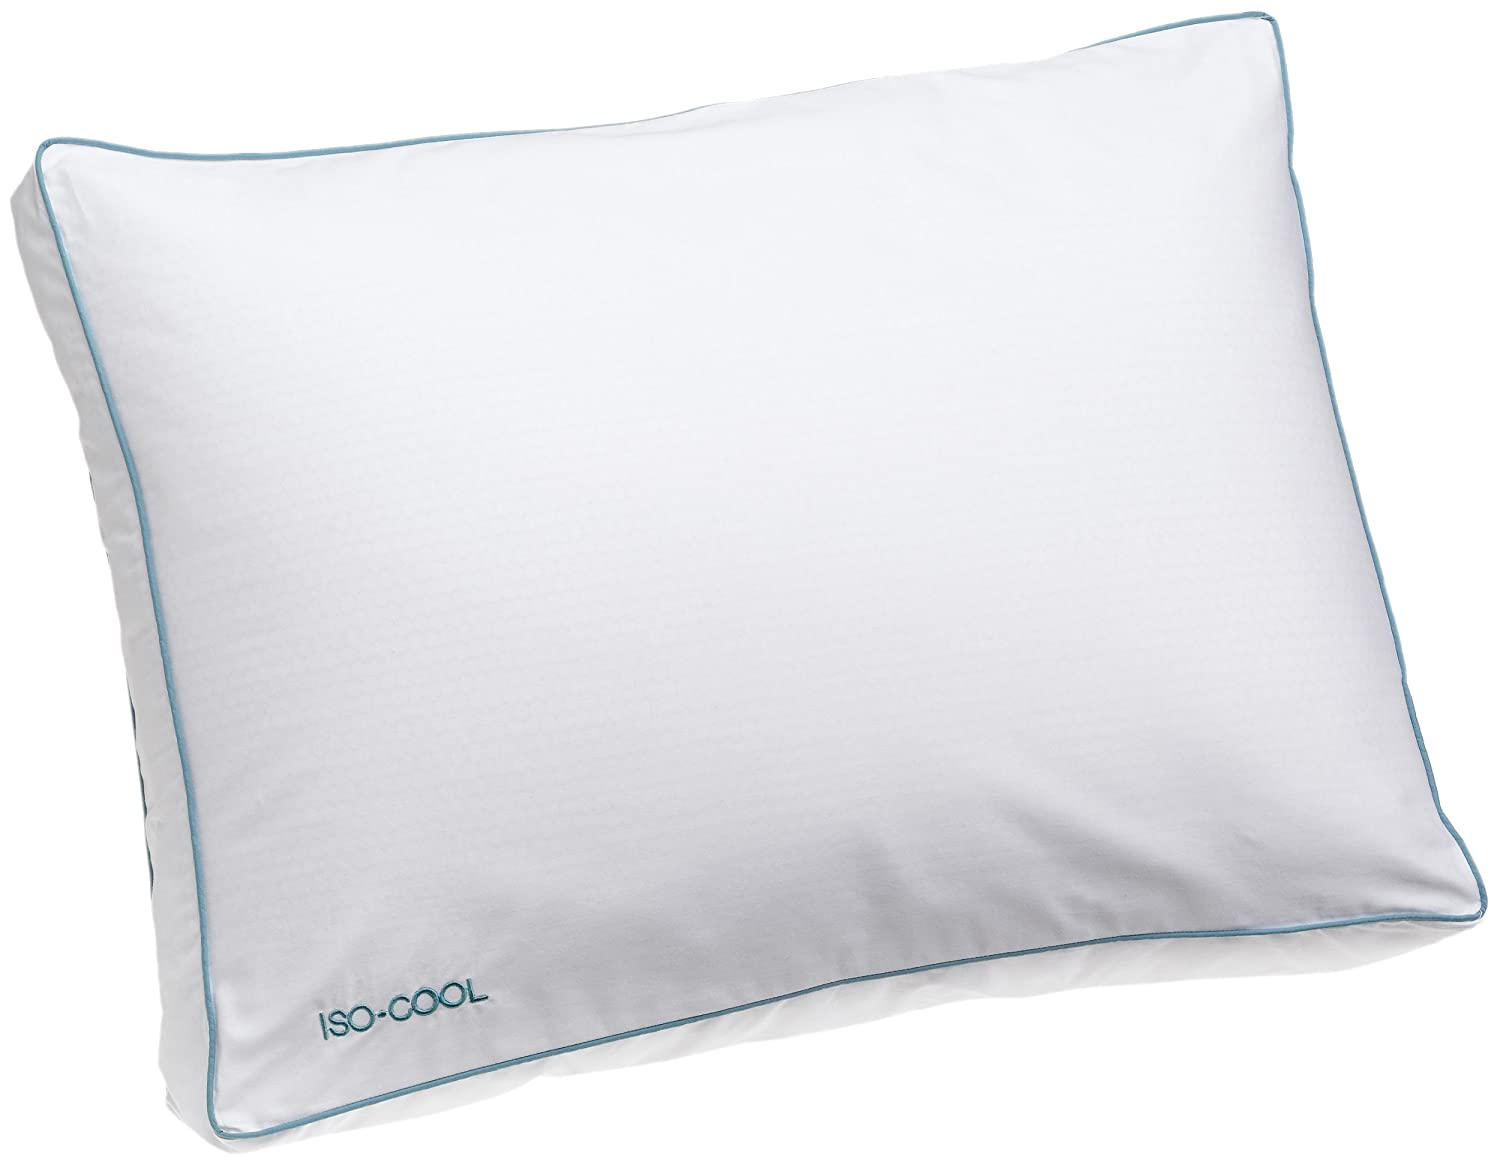 Cooling pillow reviews top 5 choices to keep cool elite The more pillows you sleep with